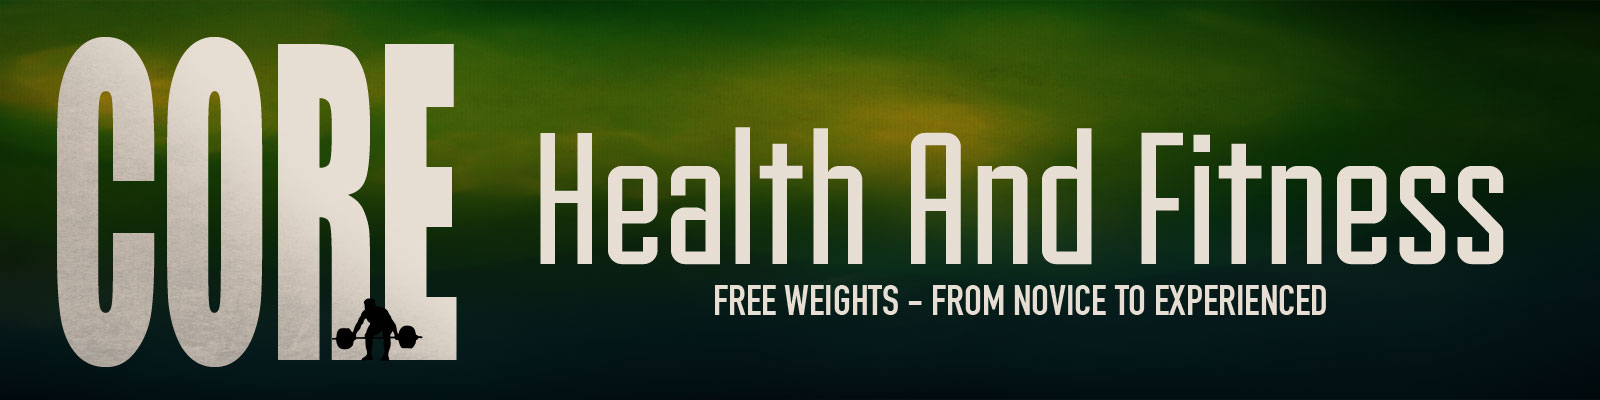 Free Weights Durrow Gym - Core Health & Fitness